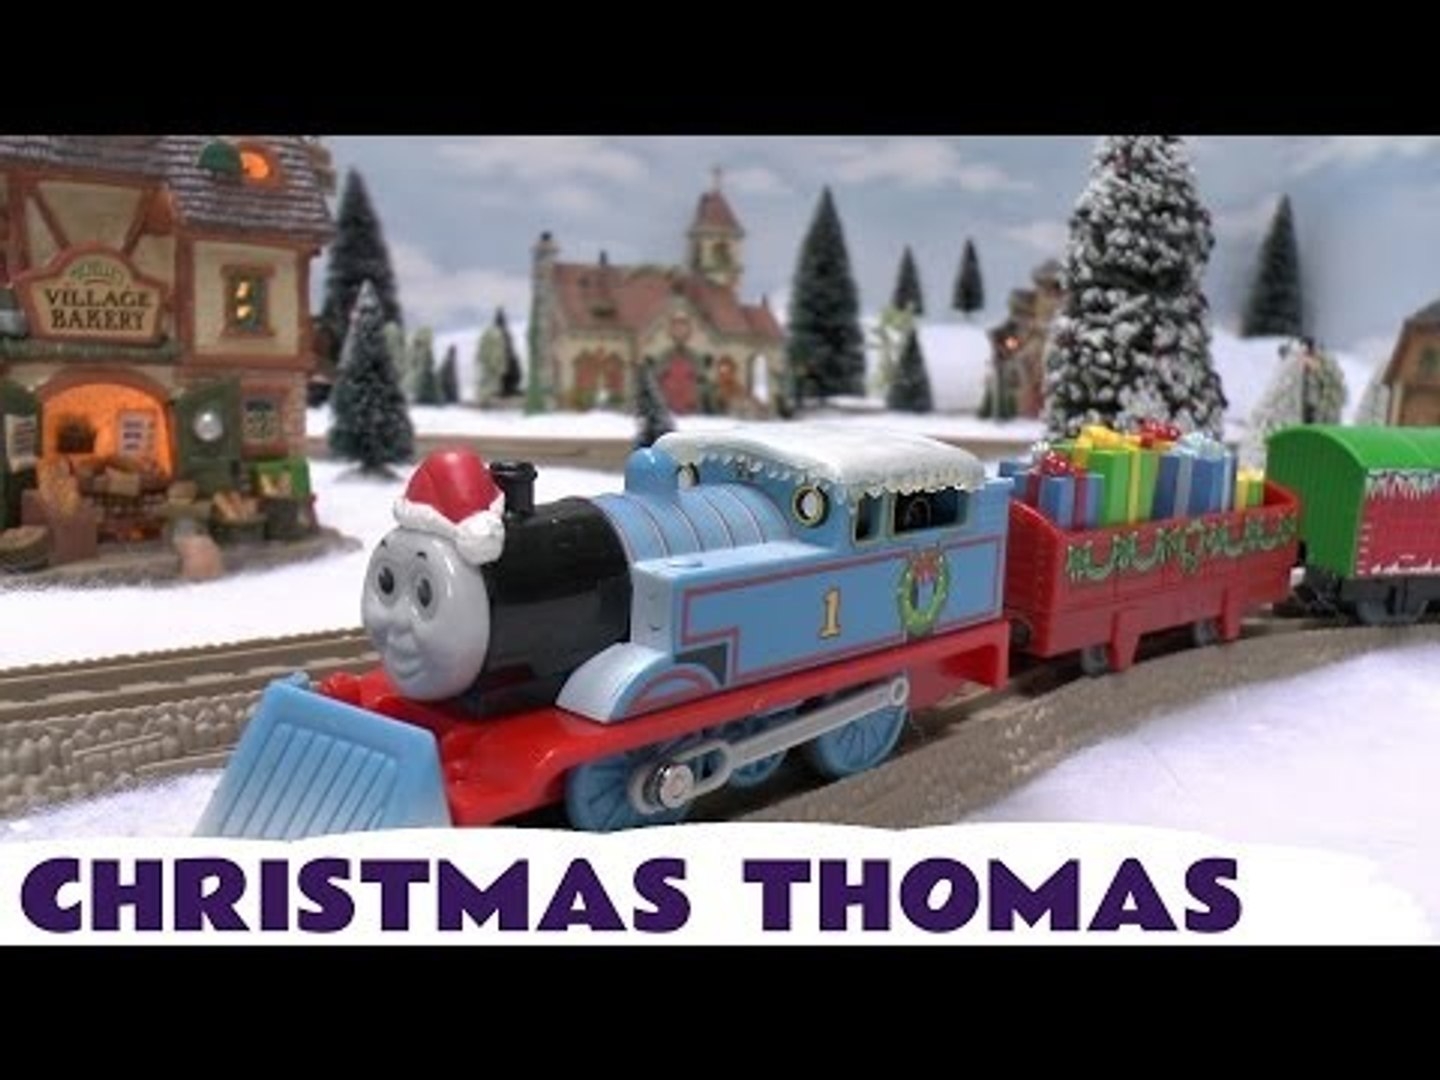 Thomas The Train Christmas.Spotlight Christmas Thomas For Tomy And Trackmaster Thomas And Friends Toy Train Sets Jingle Bells